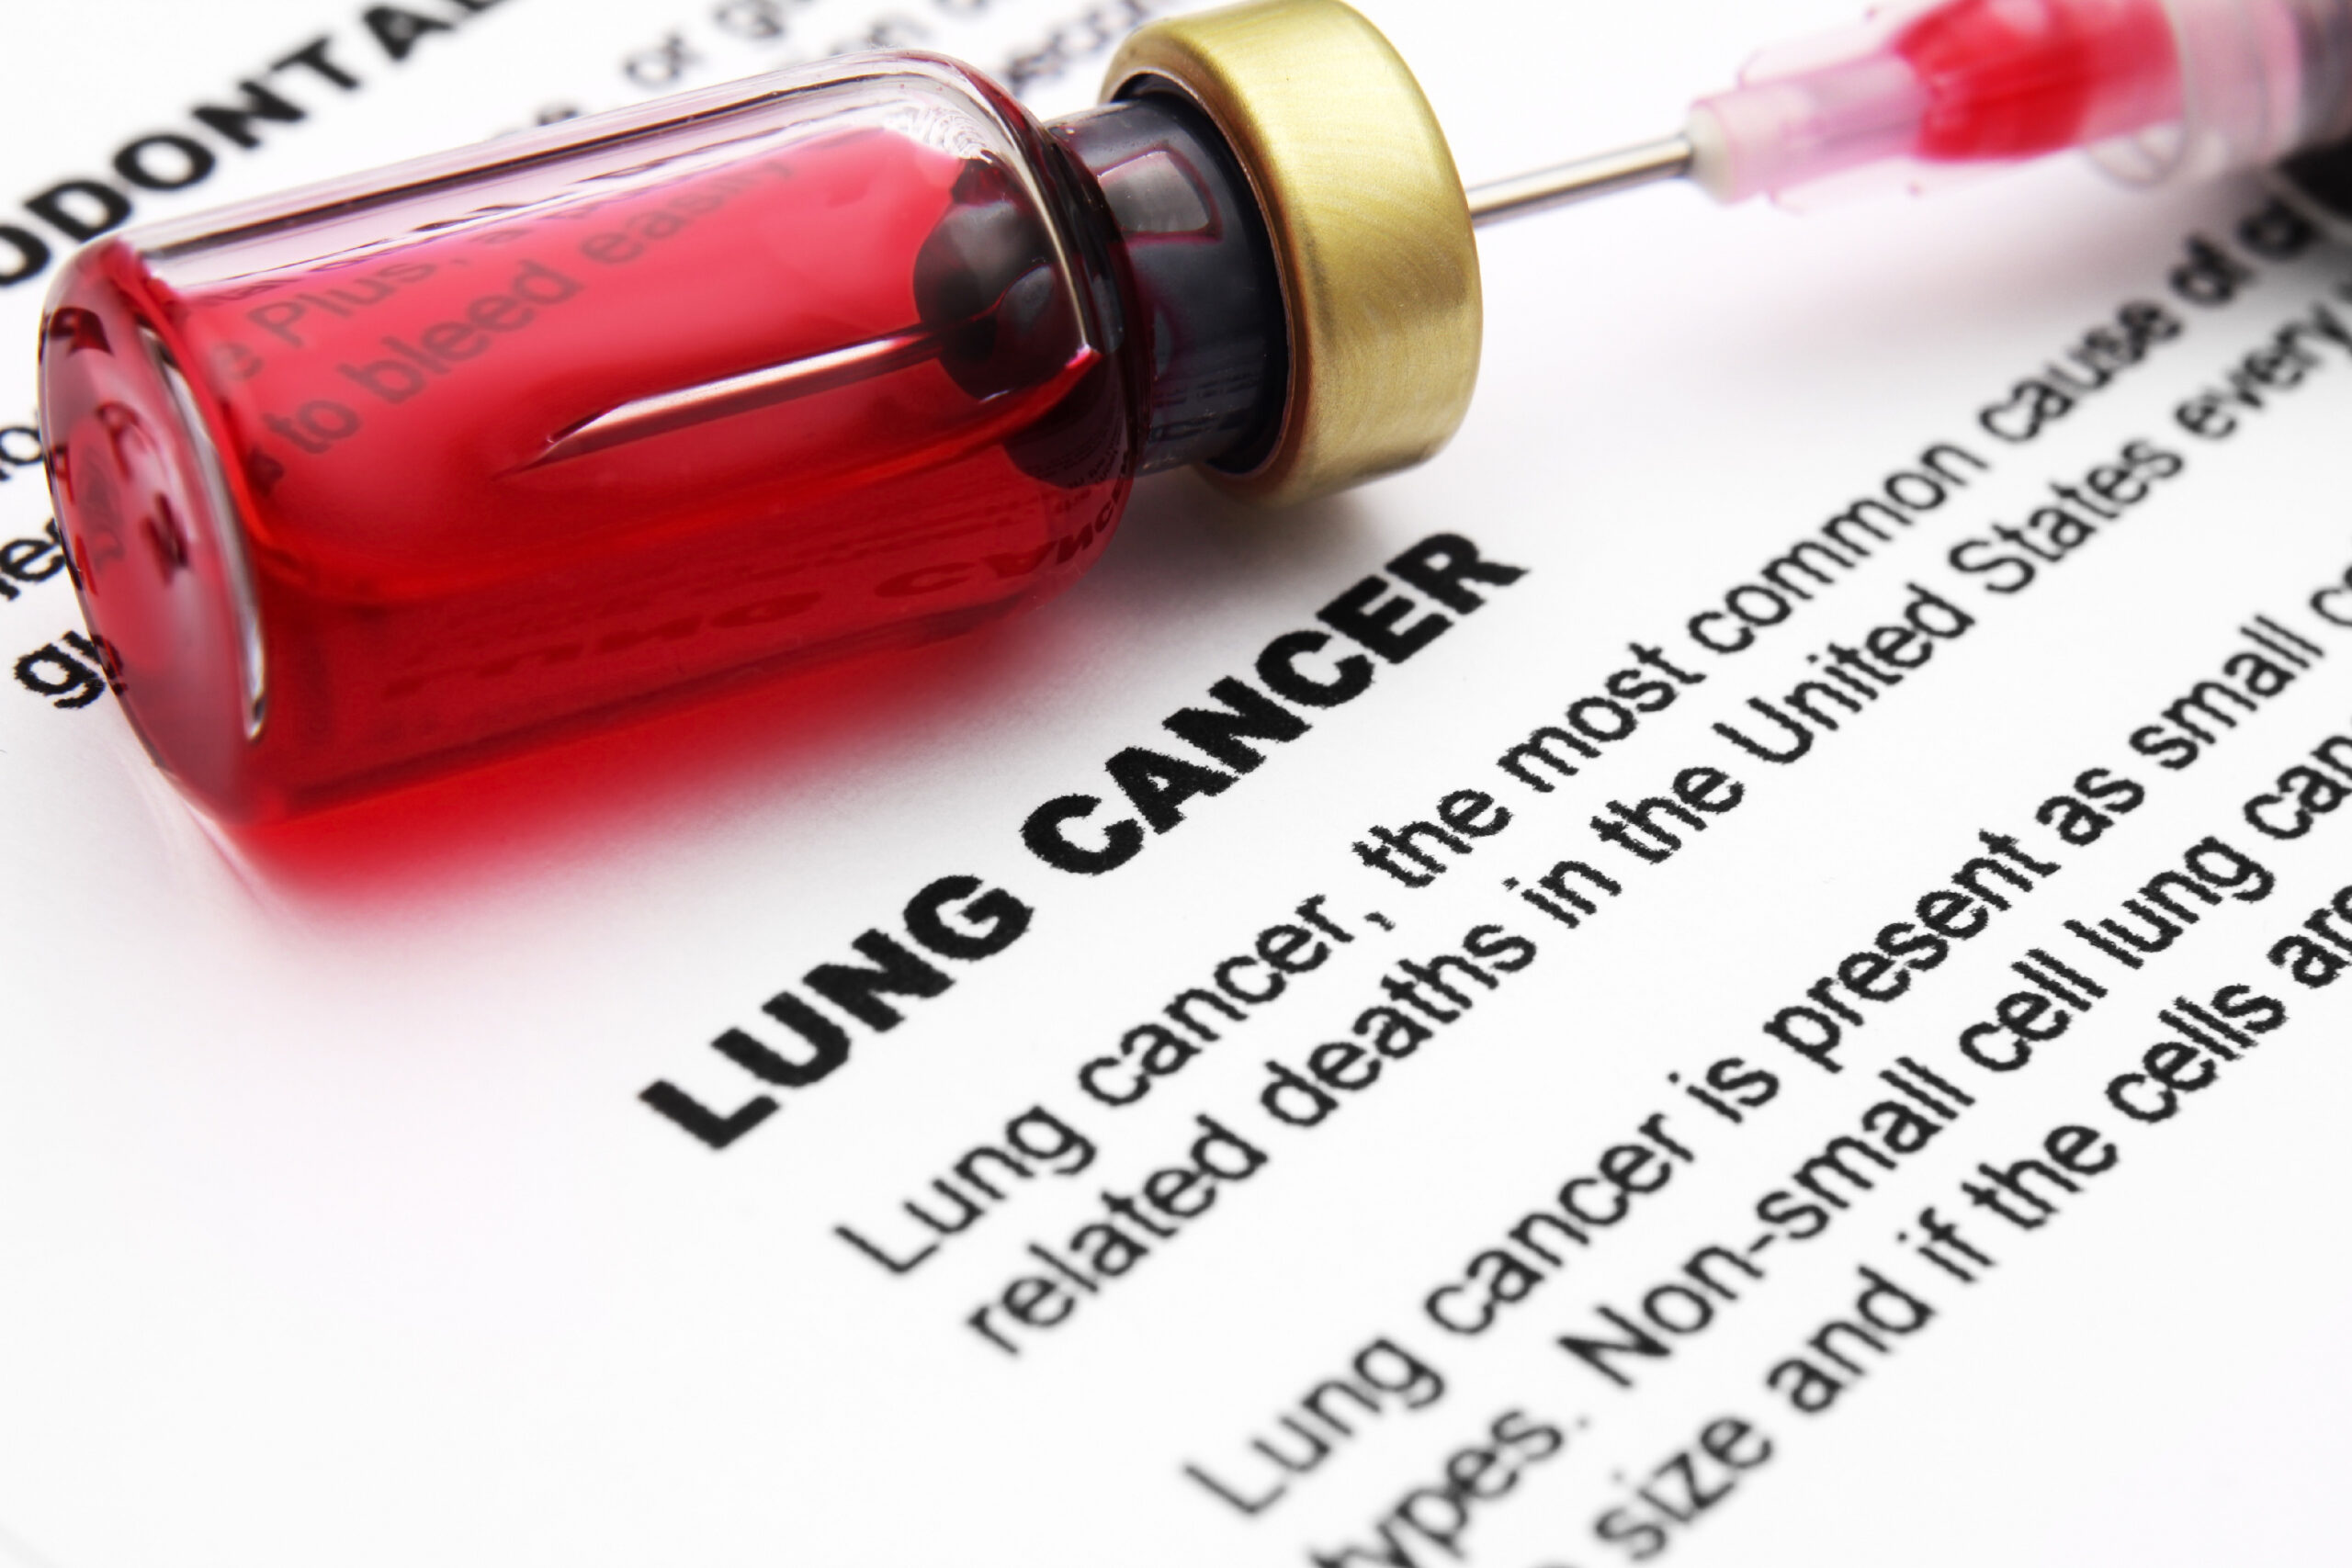 Lung cancer scaled